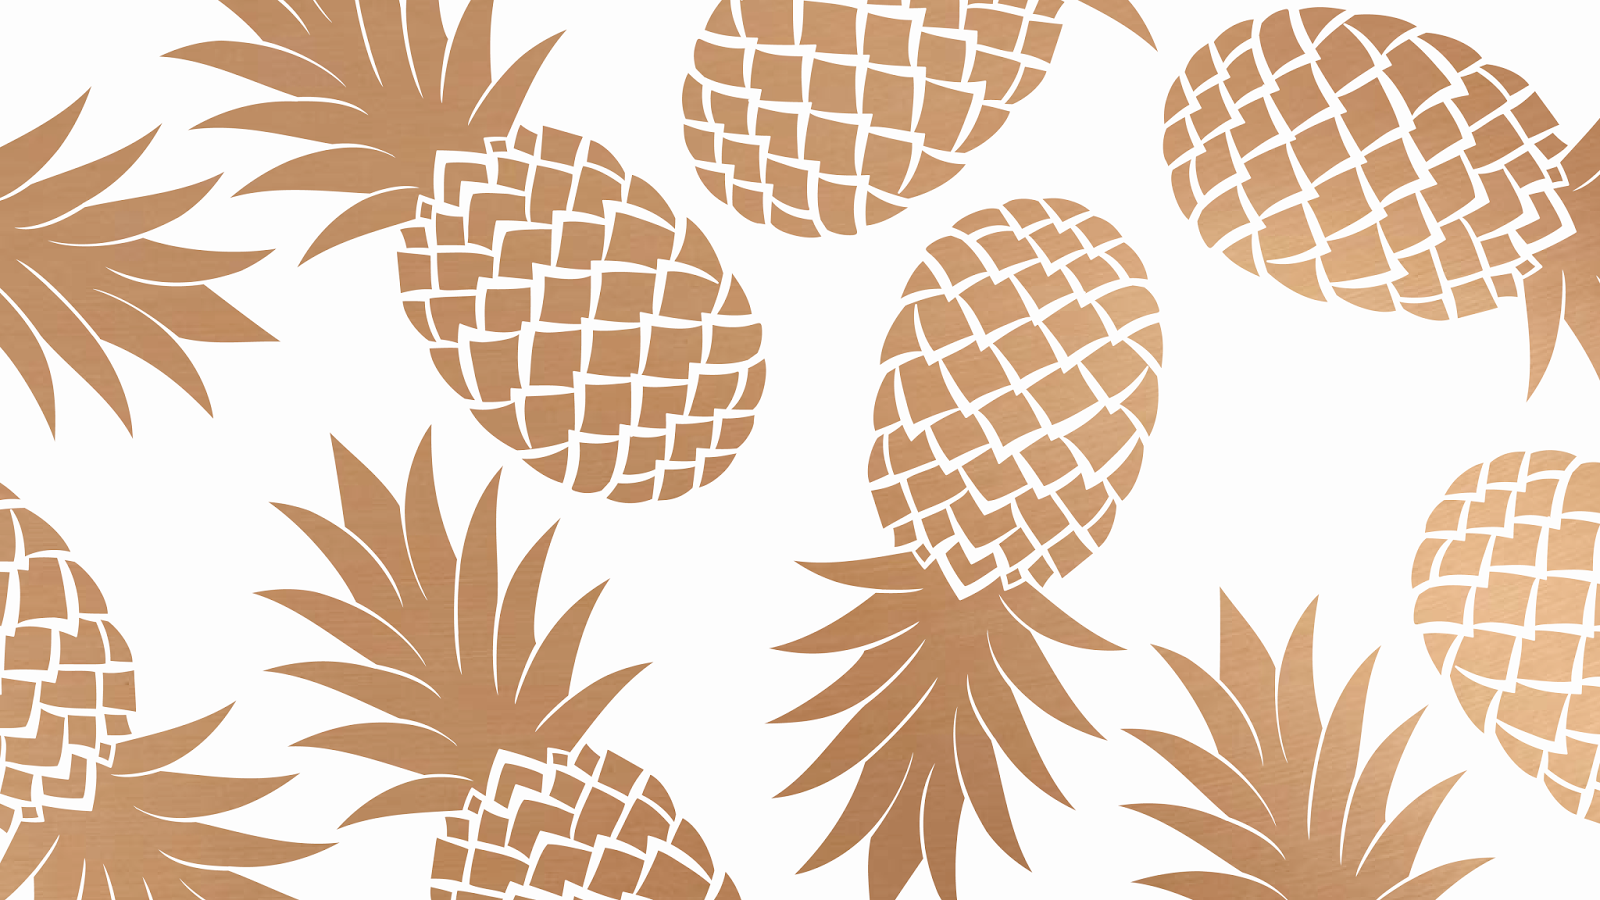 VIF-47: Ananas Wallpapers for Desktop